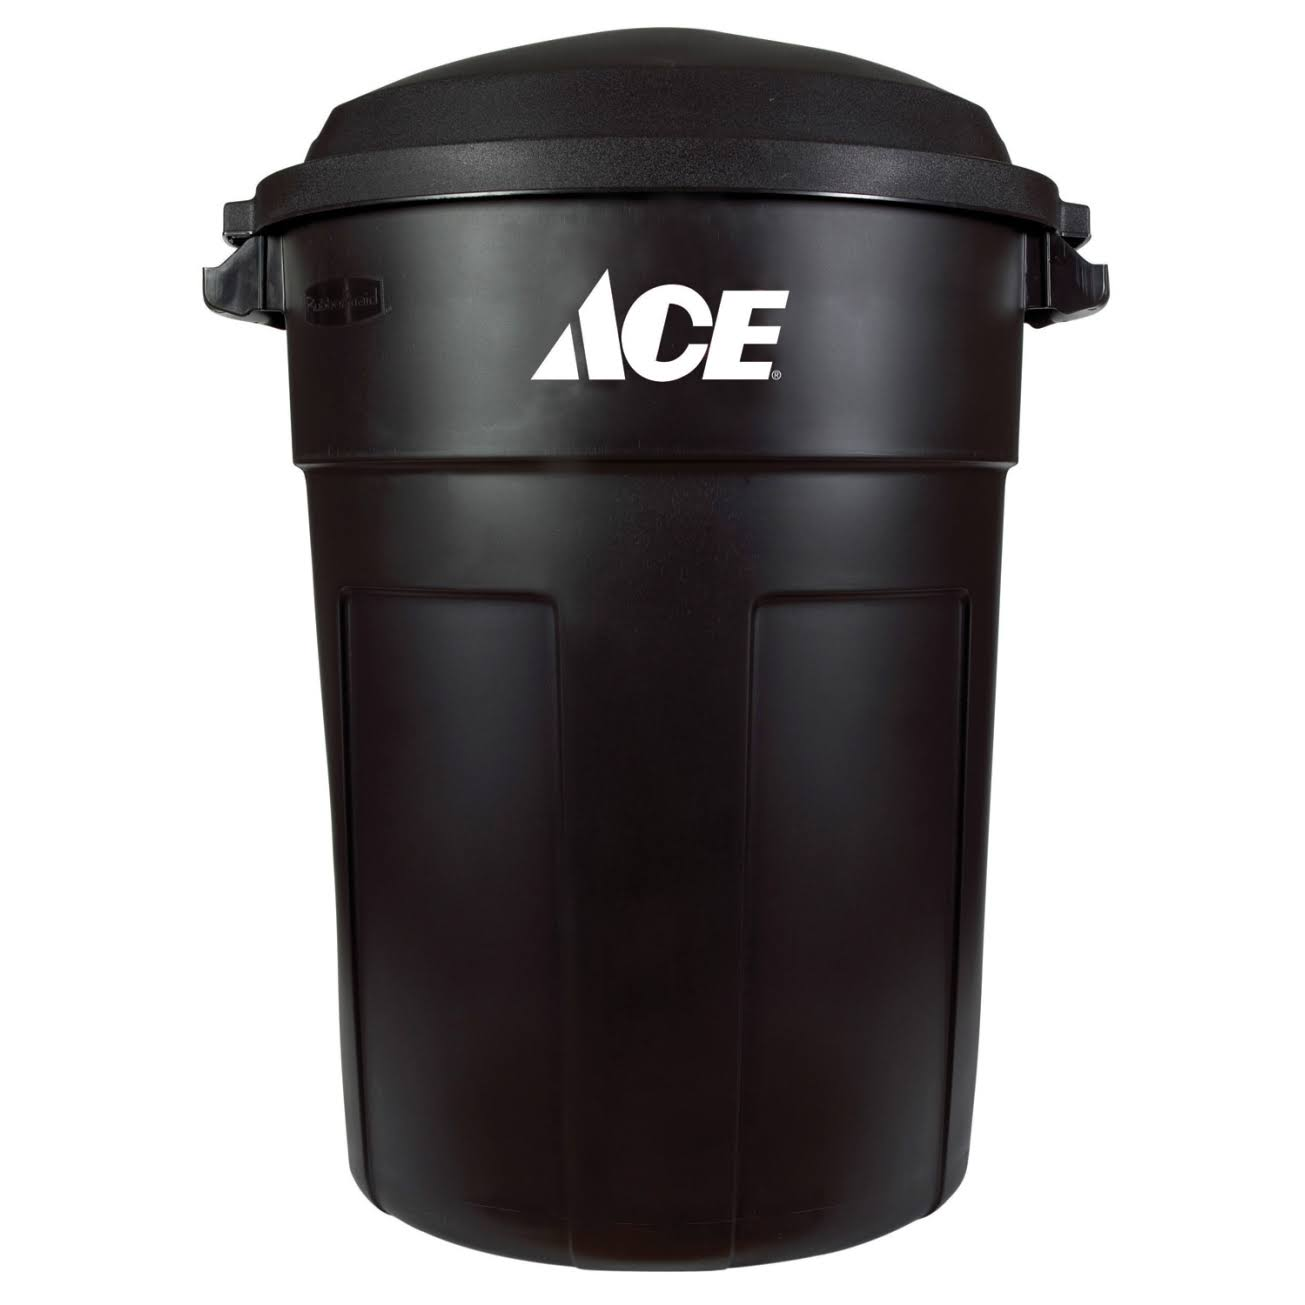 Ace Black Heavy Duty Trash Can - 32 Gal